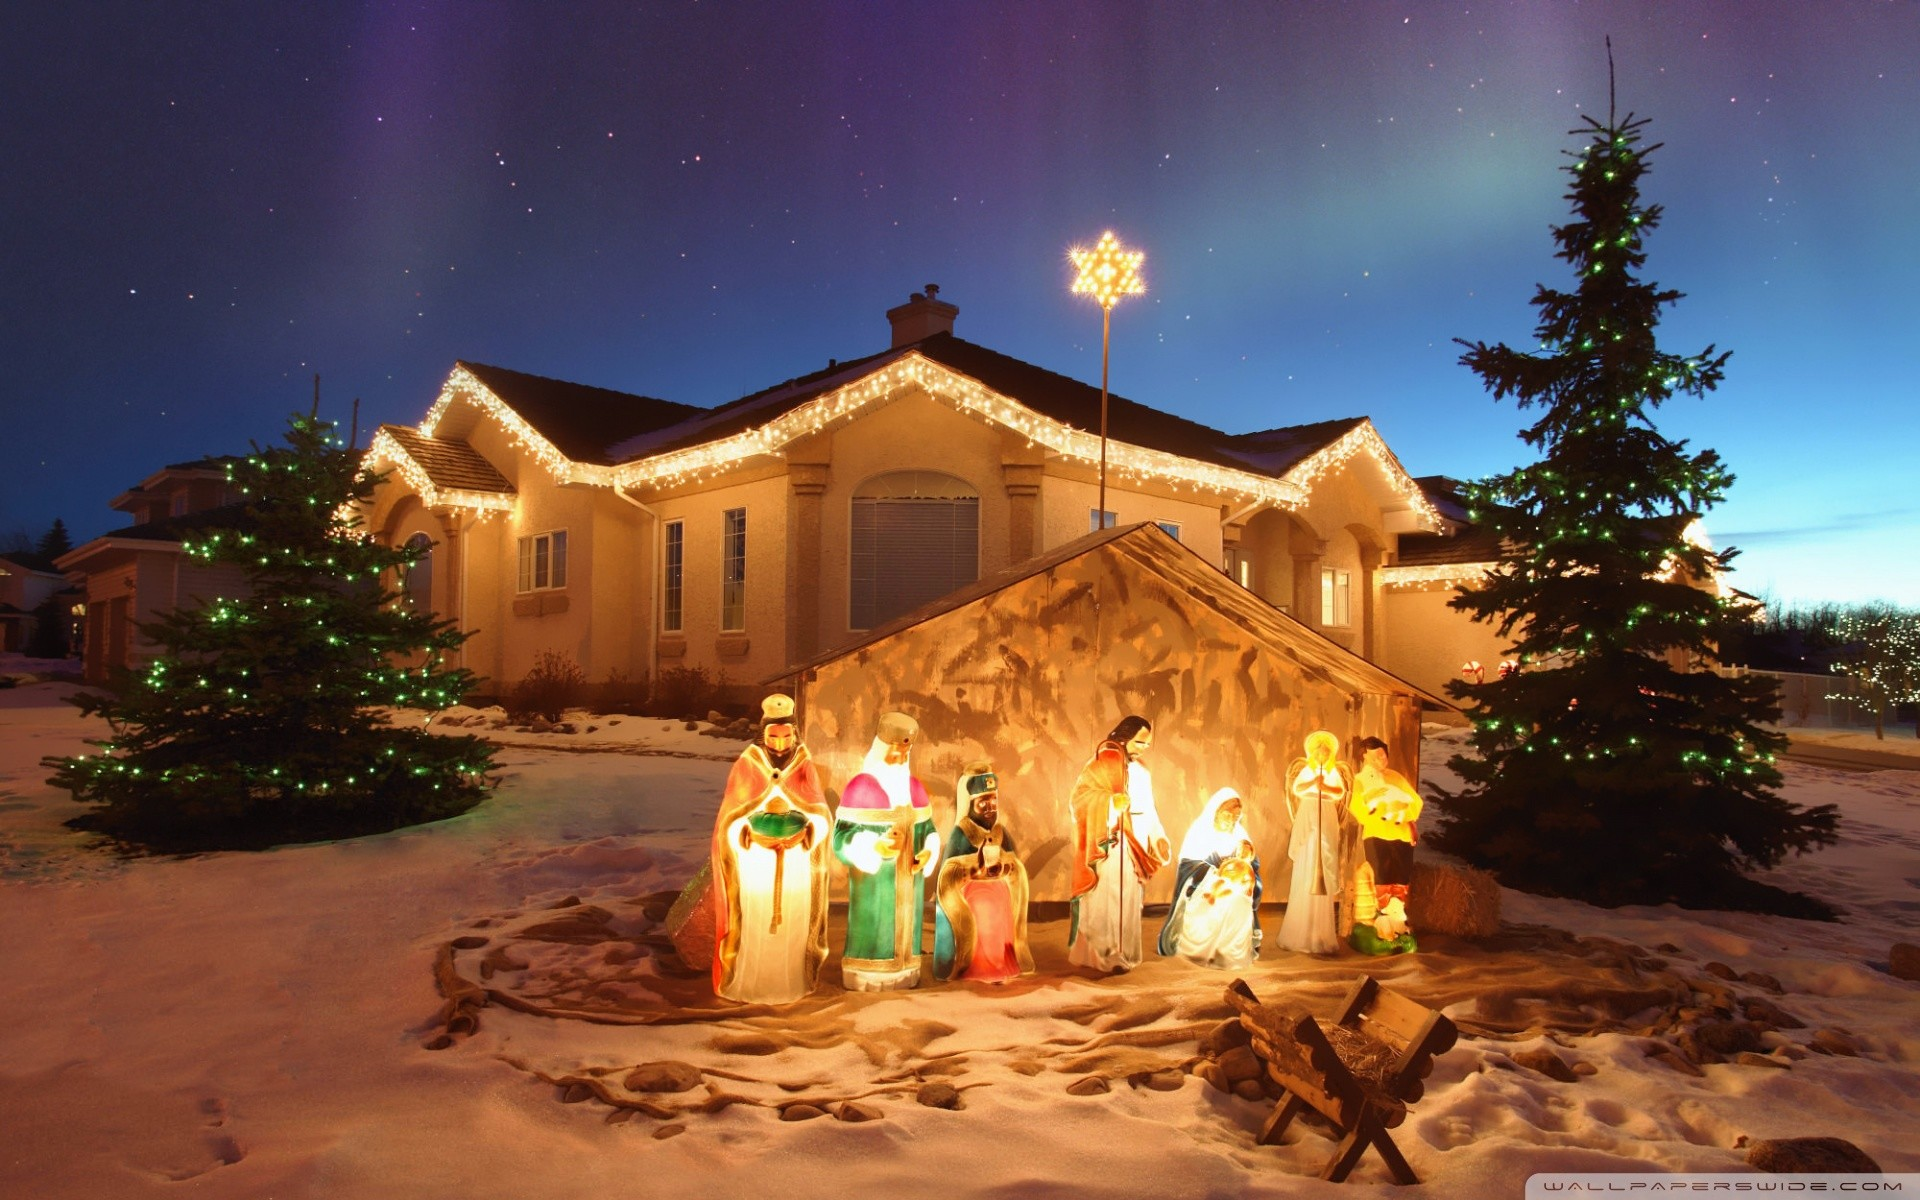 1920x1200 Outdoor Christmas Nativity Scen · outdoor_christmas_nativity_scene-wallpaper -